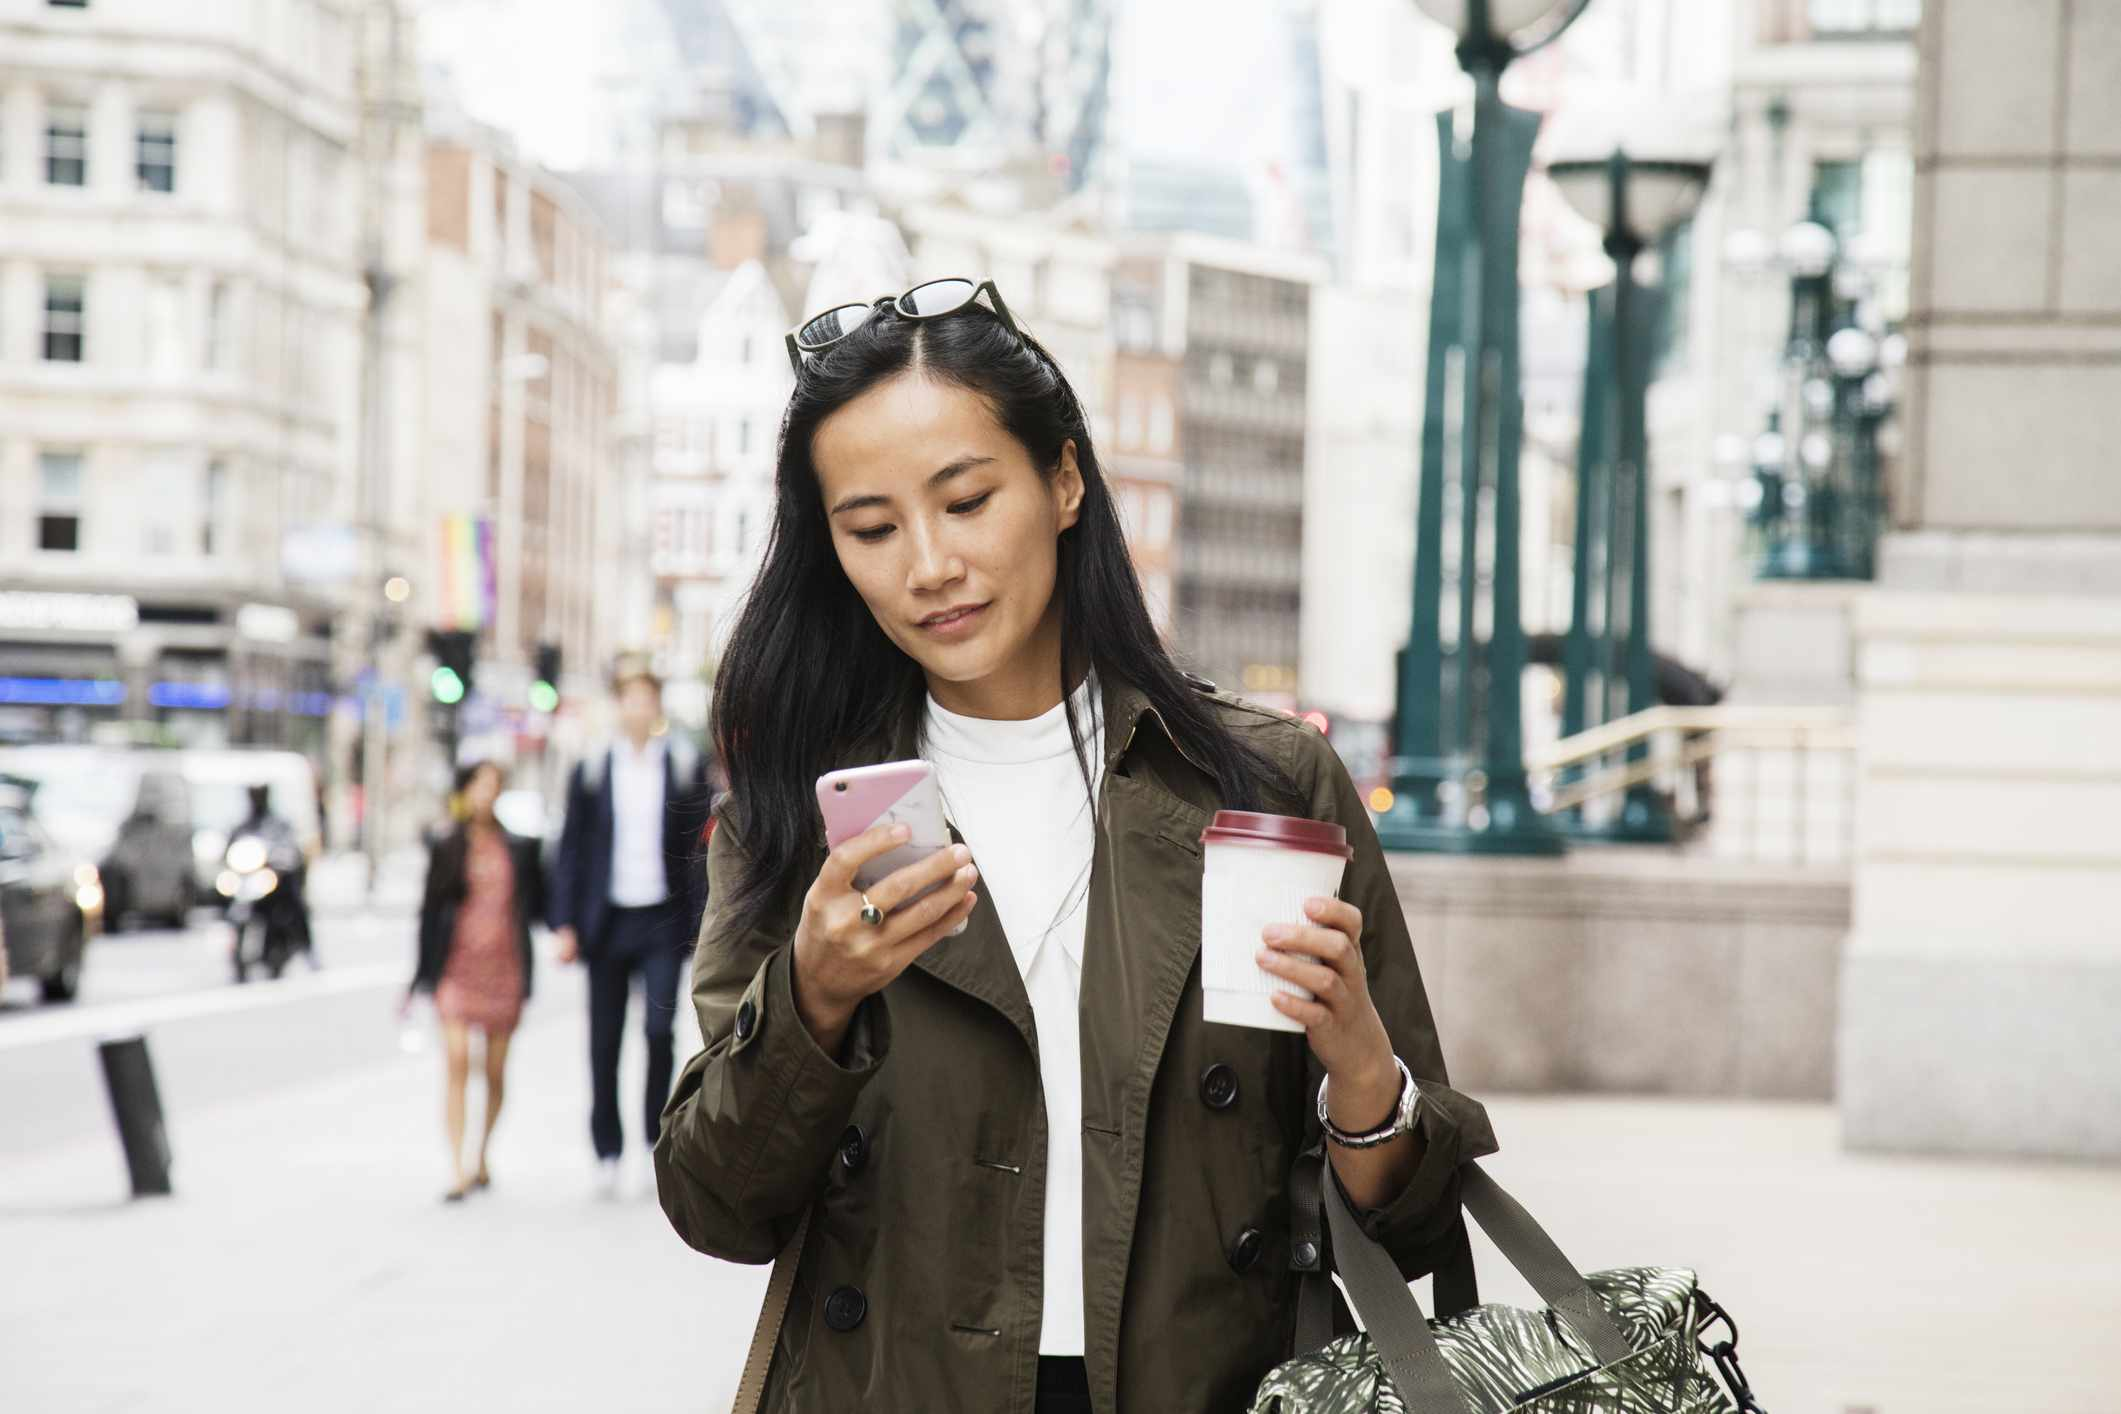 Asian woman looking at her phone